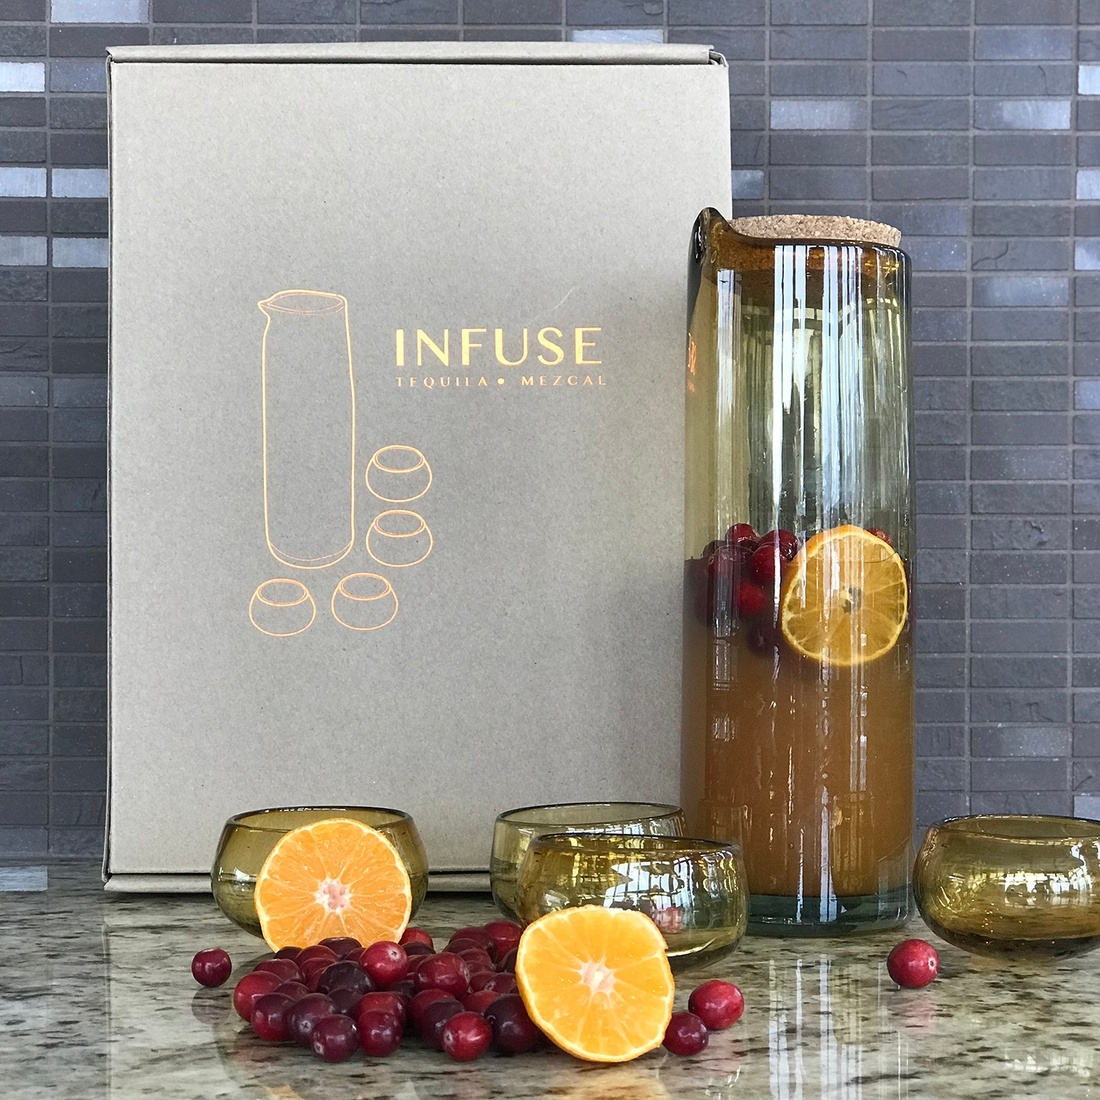 Verve Culture INFUSE - Mezcal & Tequila Infusion & Tasting Kit